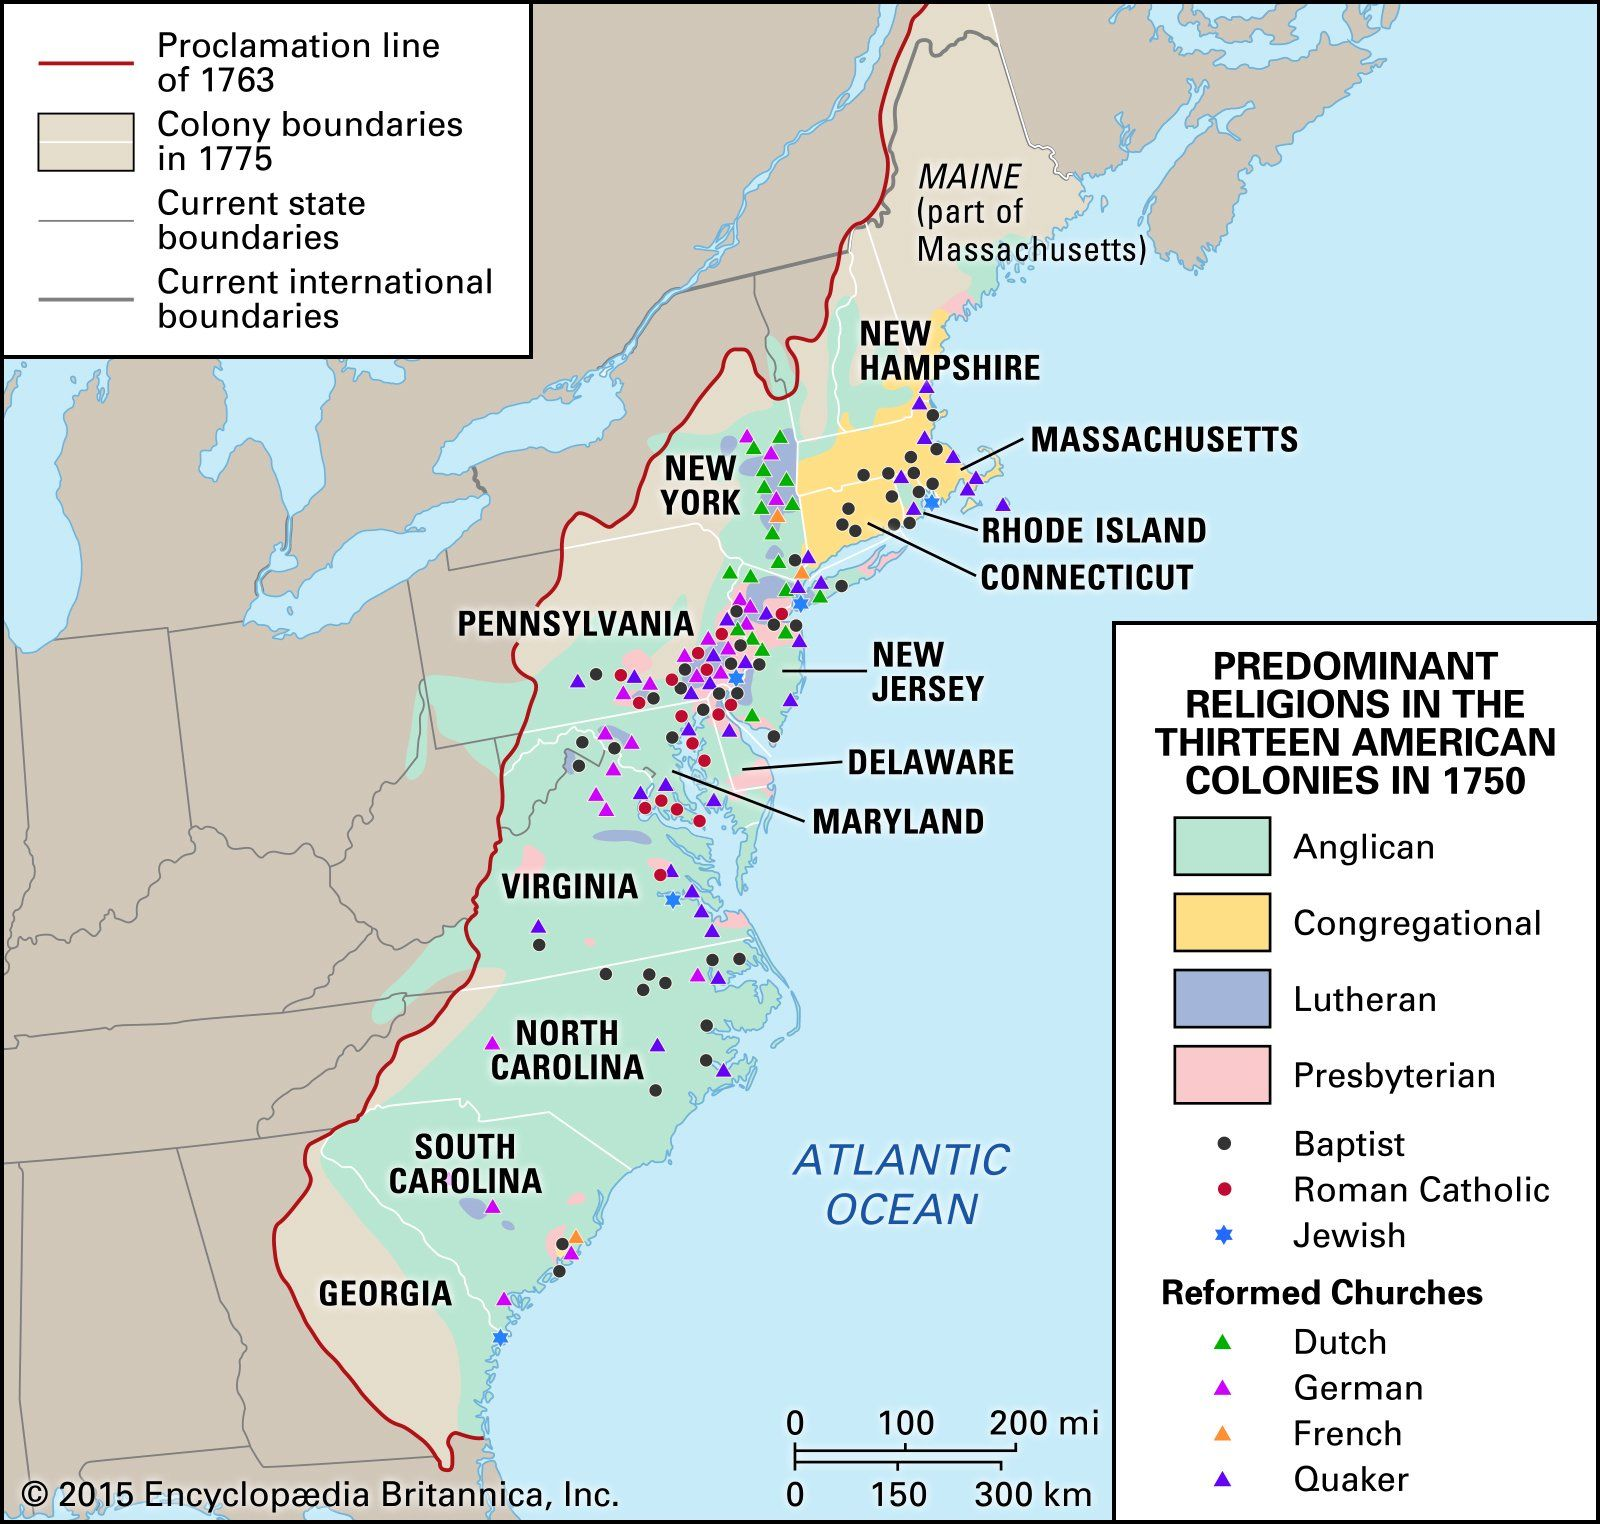 Religion Map Of The 13 Colonies In